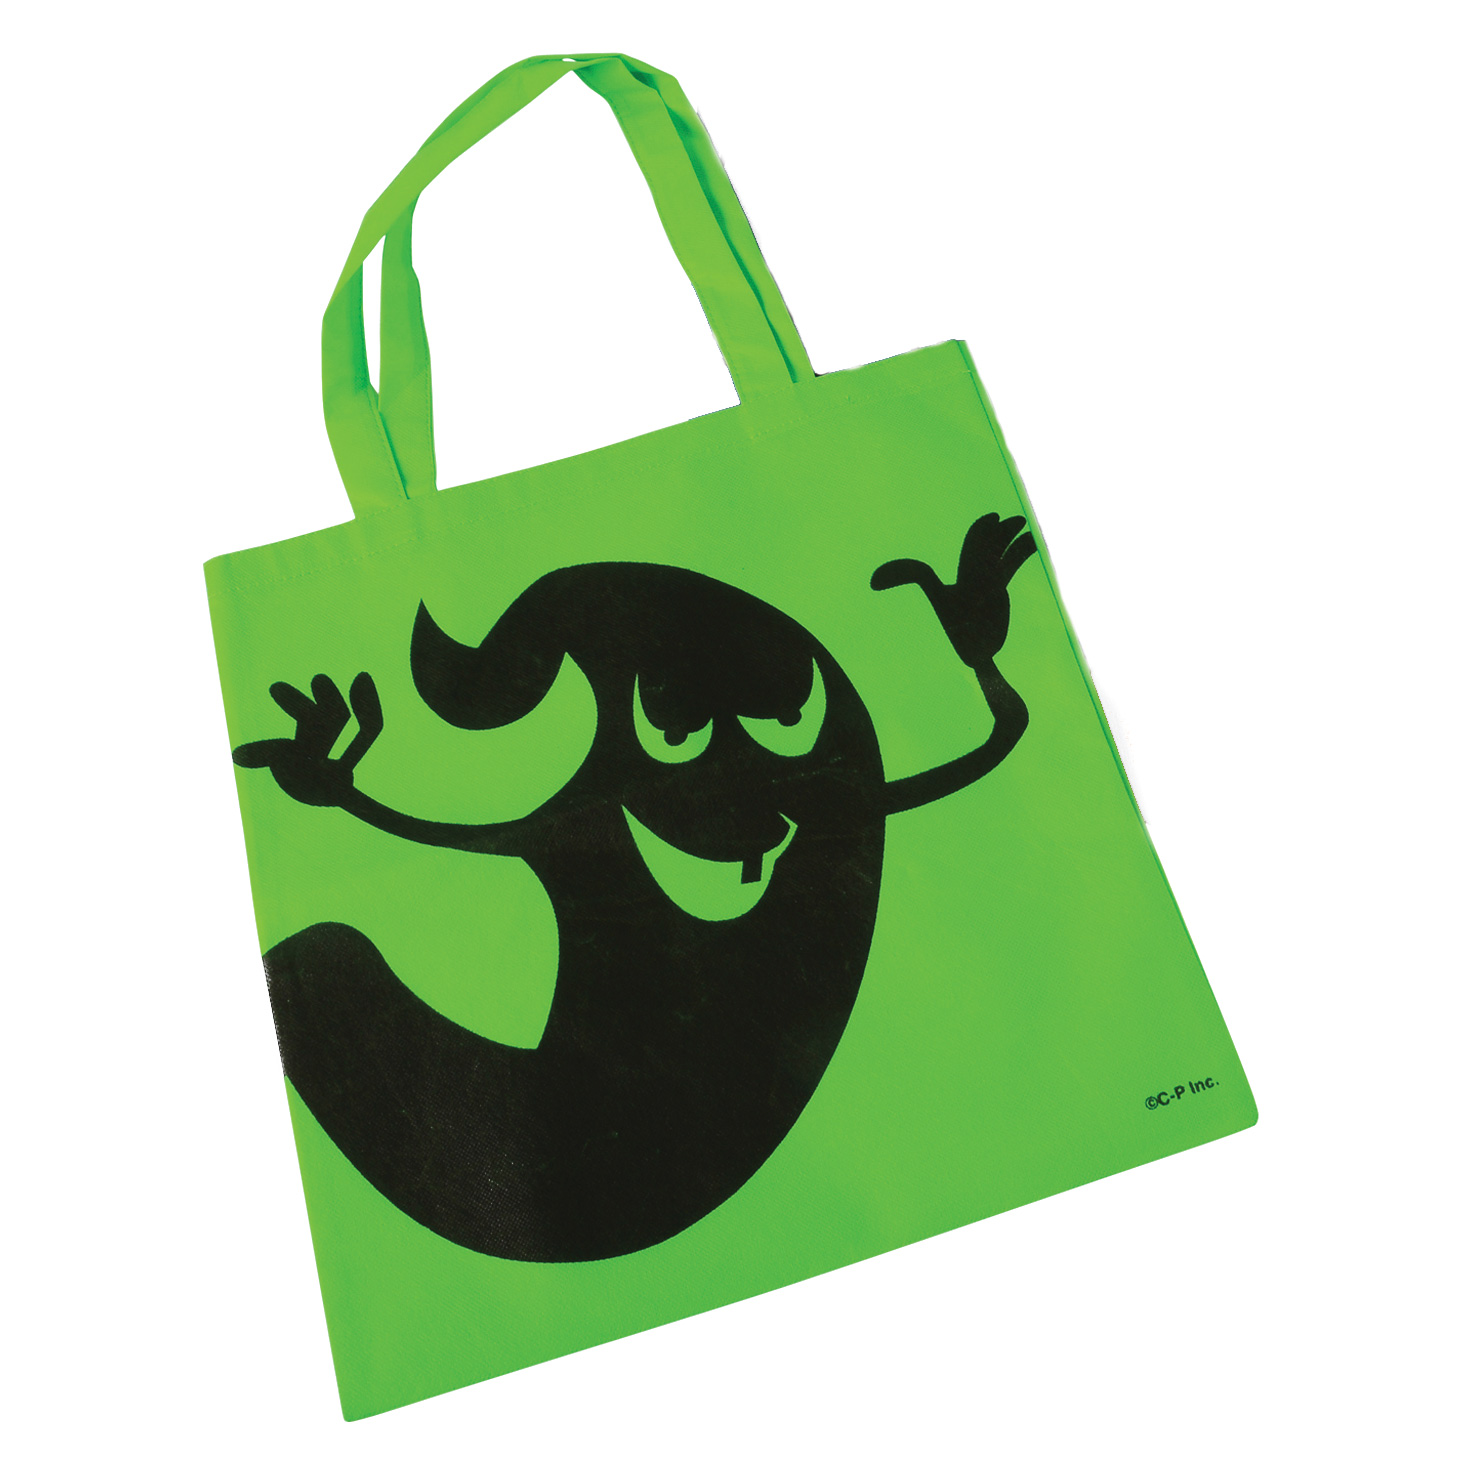 "Halloween Ghostly 16"" Candy Trick-or-Treat Tote Bag with Handles, Green"